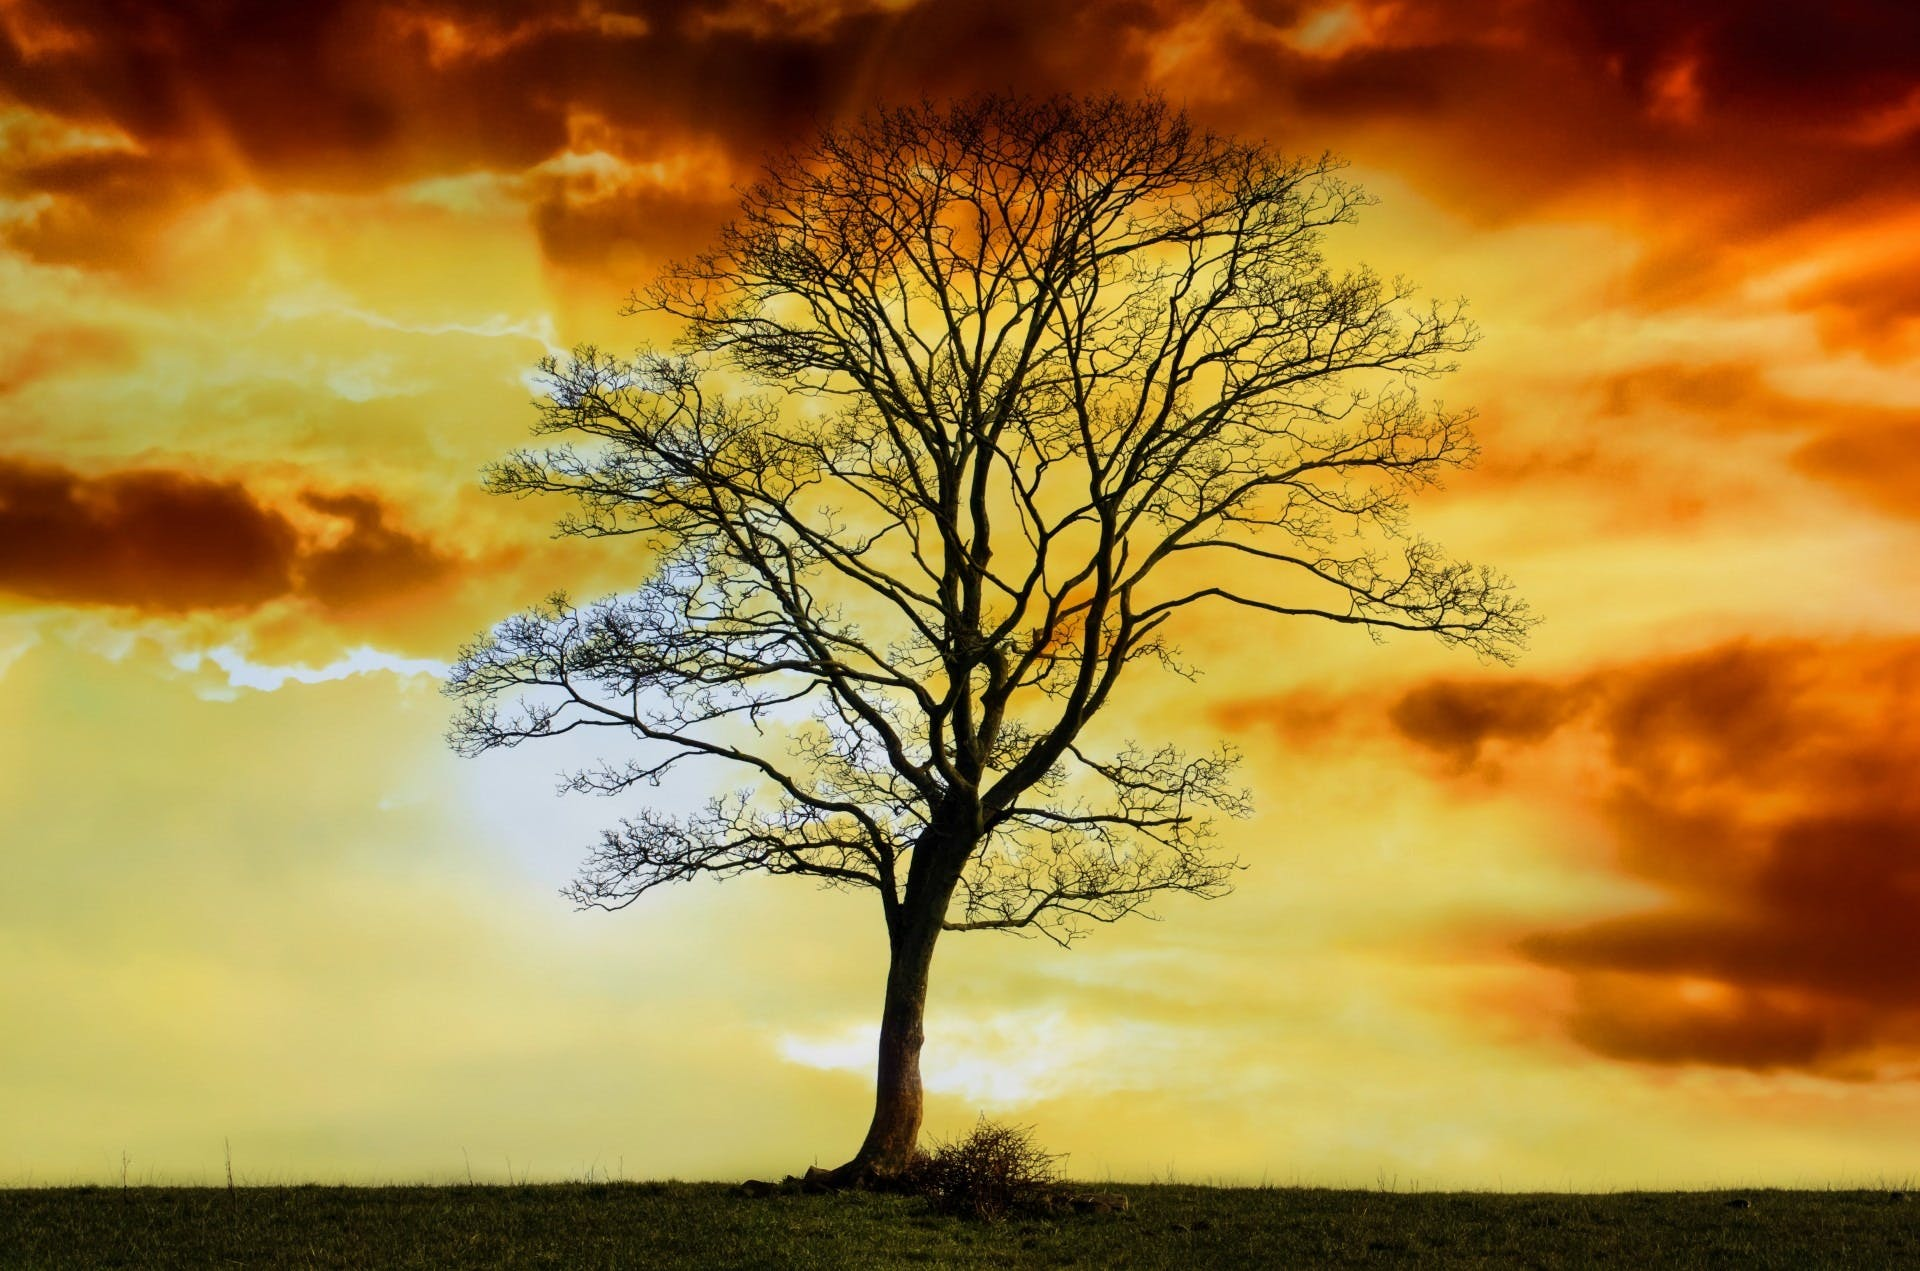 Silhouette of Bare Tree